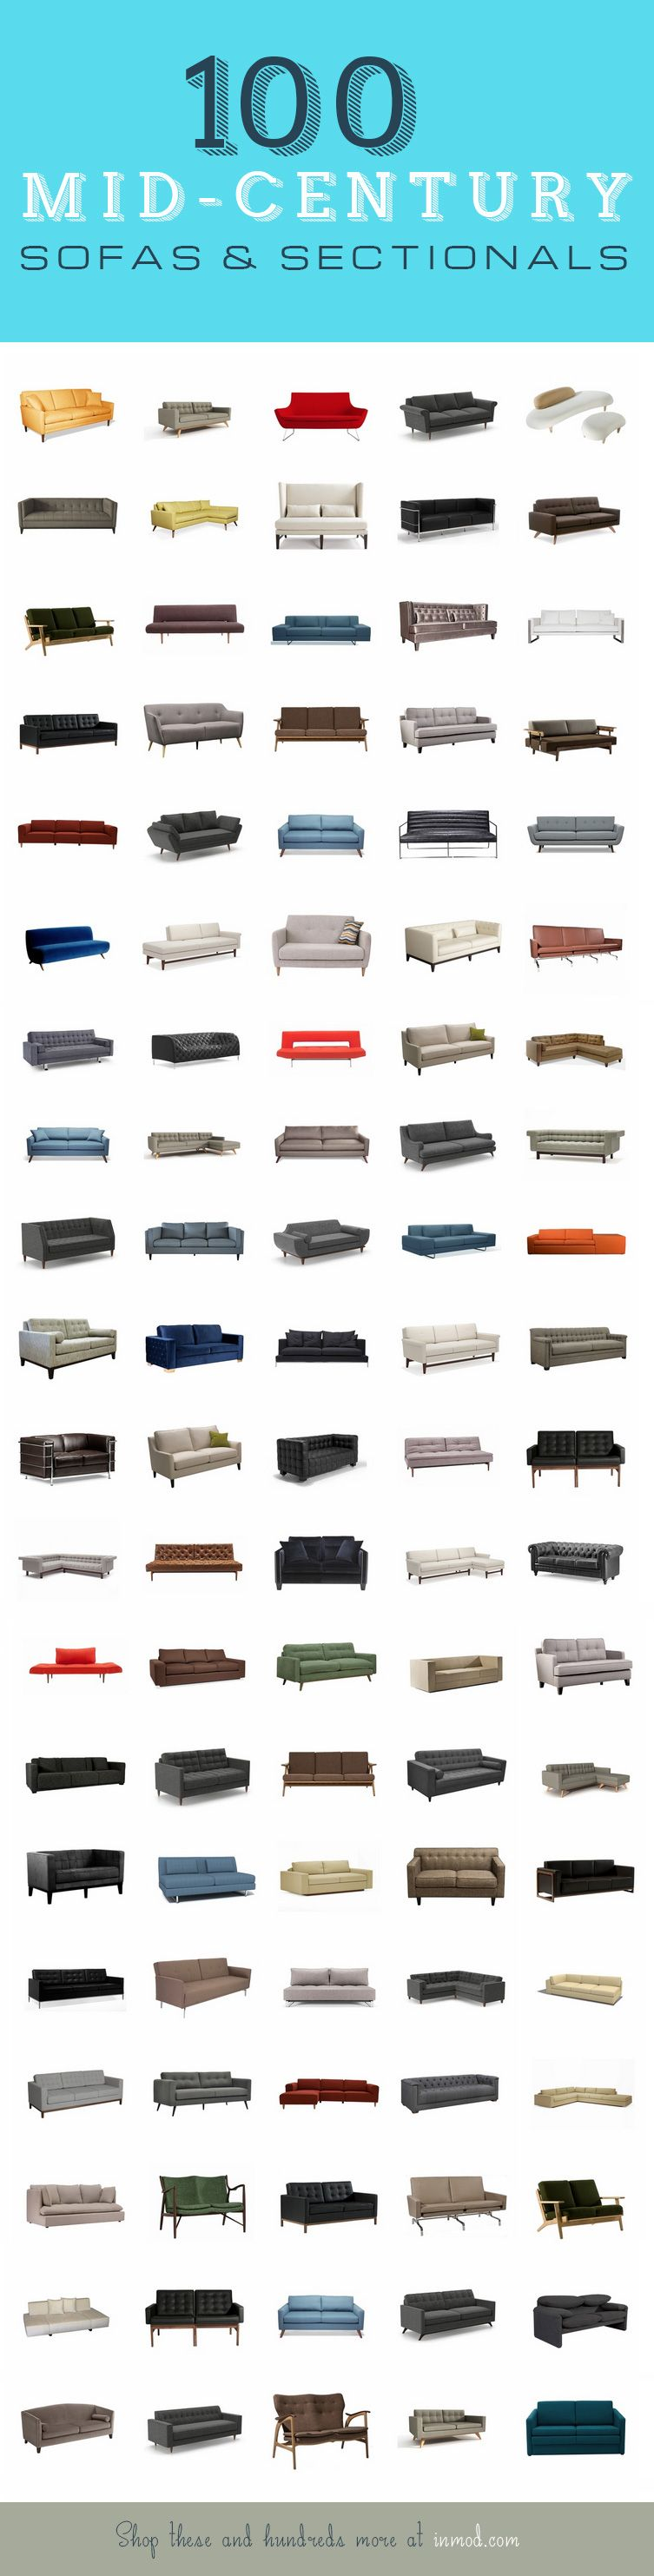 100 of our favorite Mid Century Modern Sofas & Sectionals from